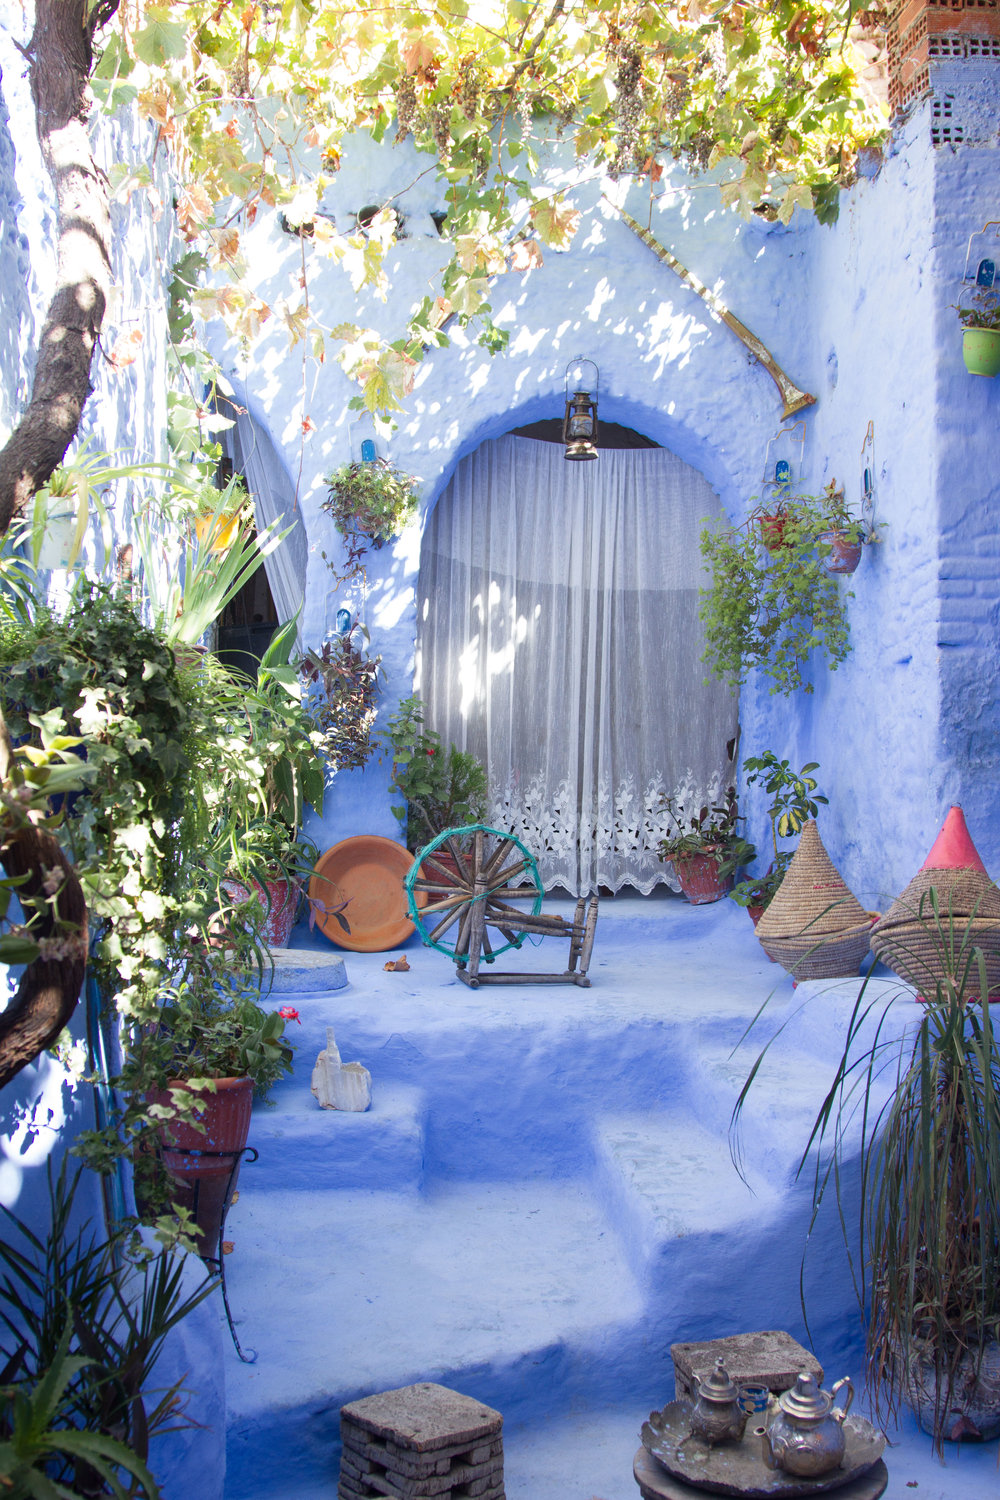 Peek inside a Chefchaouen home where tourists are welcomed in for a photo op